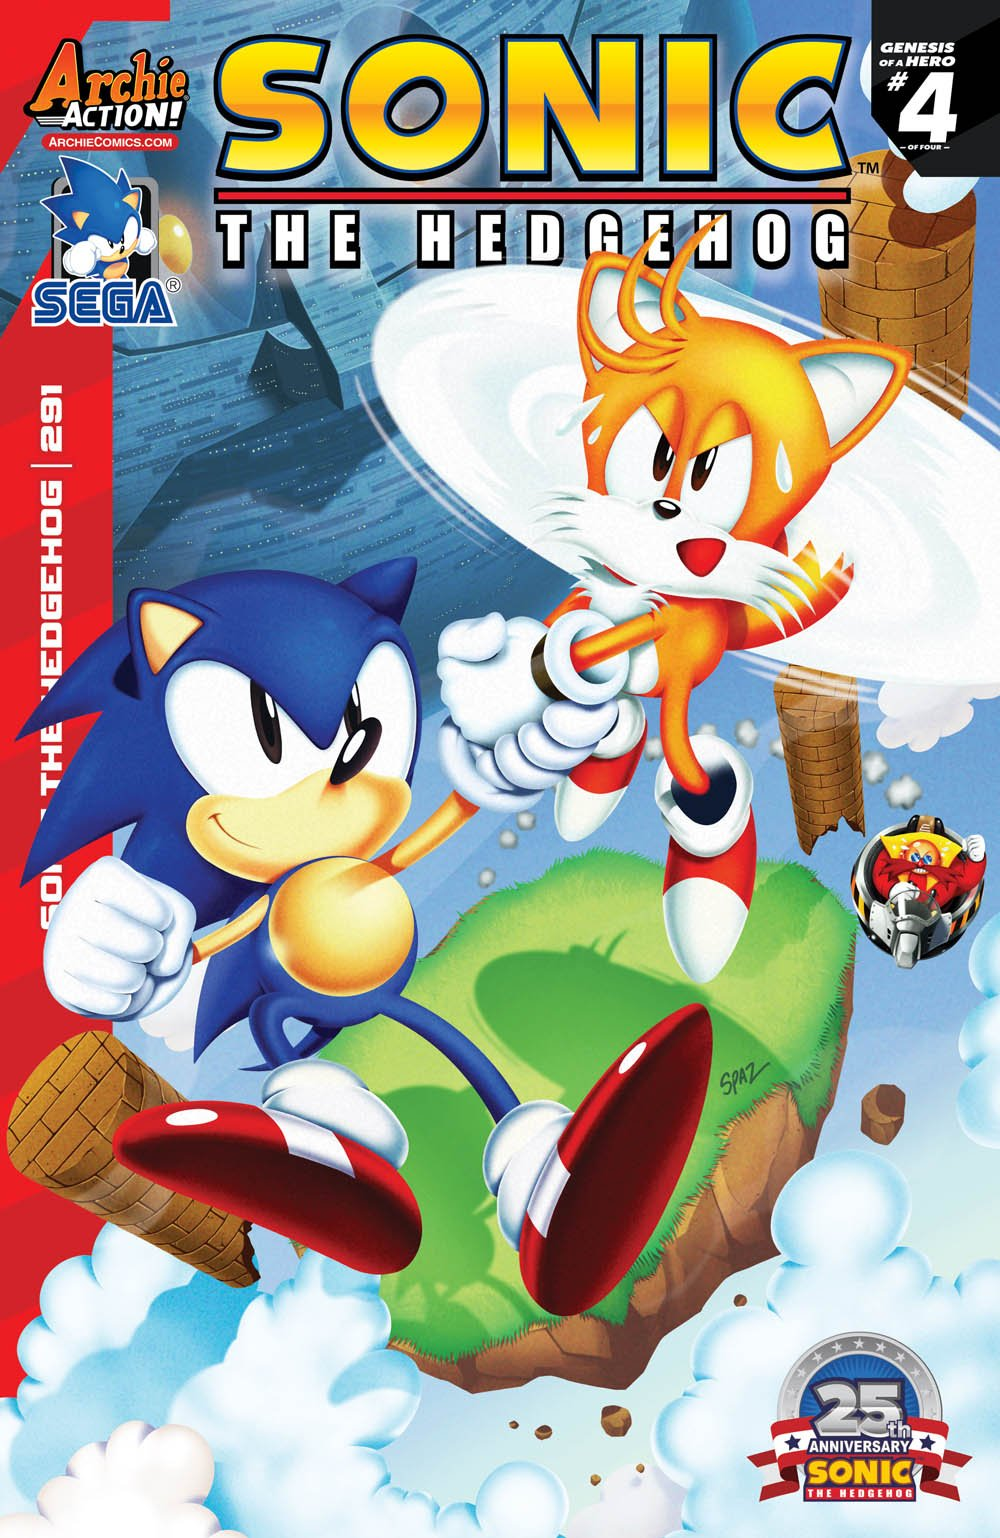 Archie Sonic The Hedgehog Issue 291 Sonic News Network Fandom